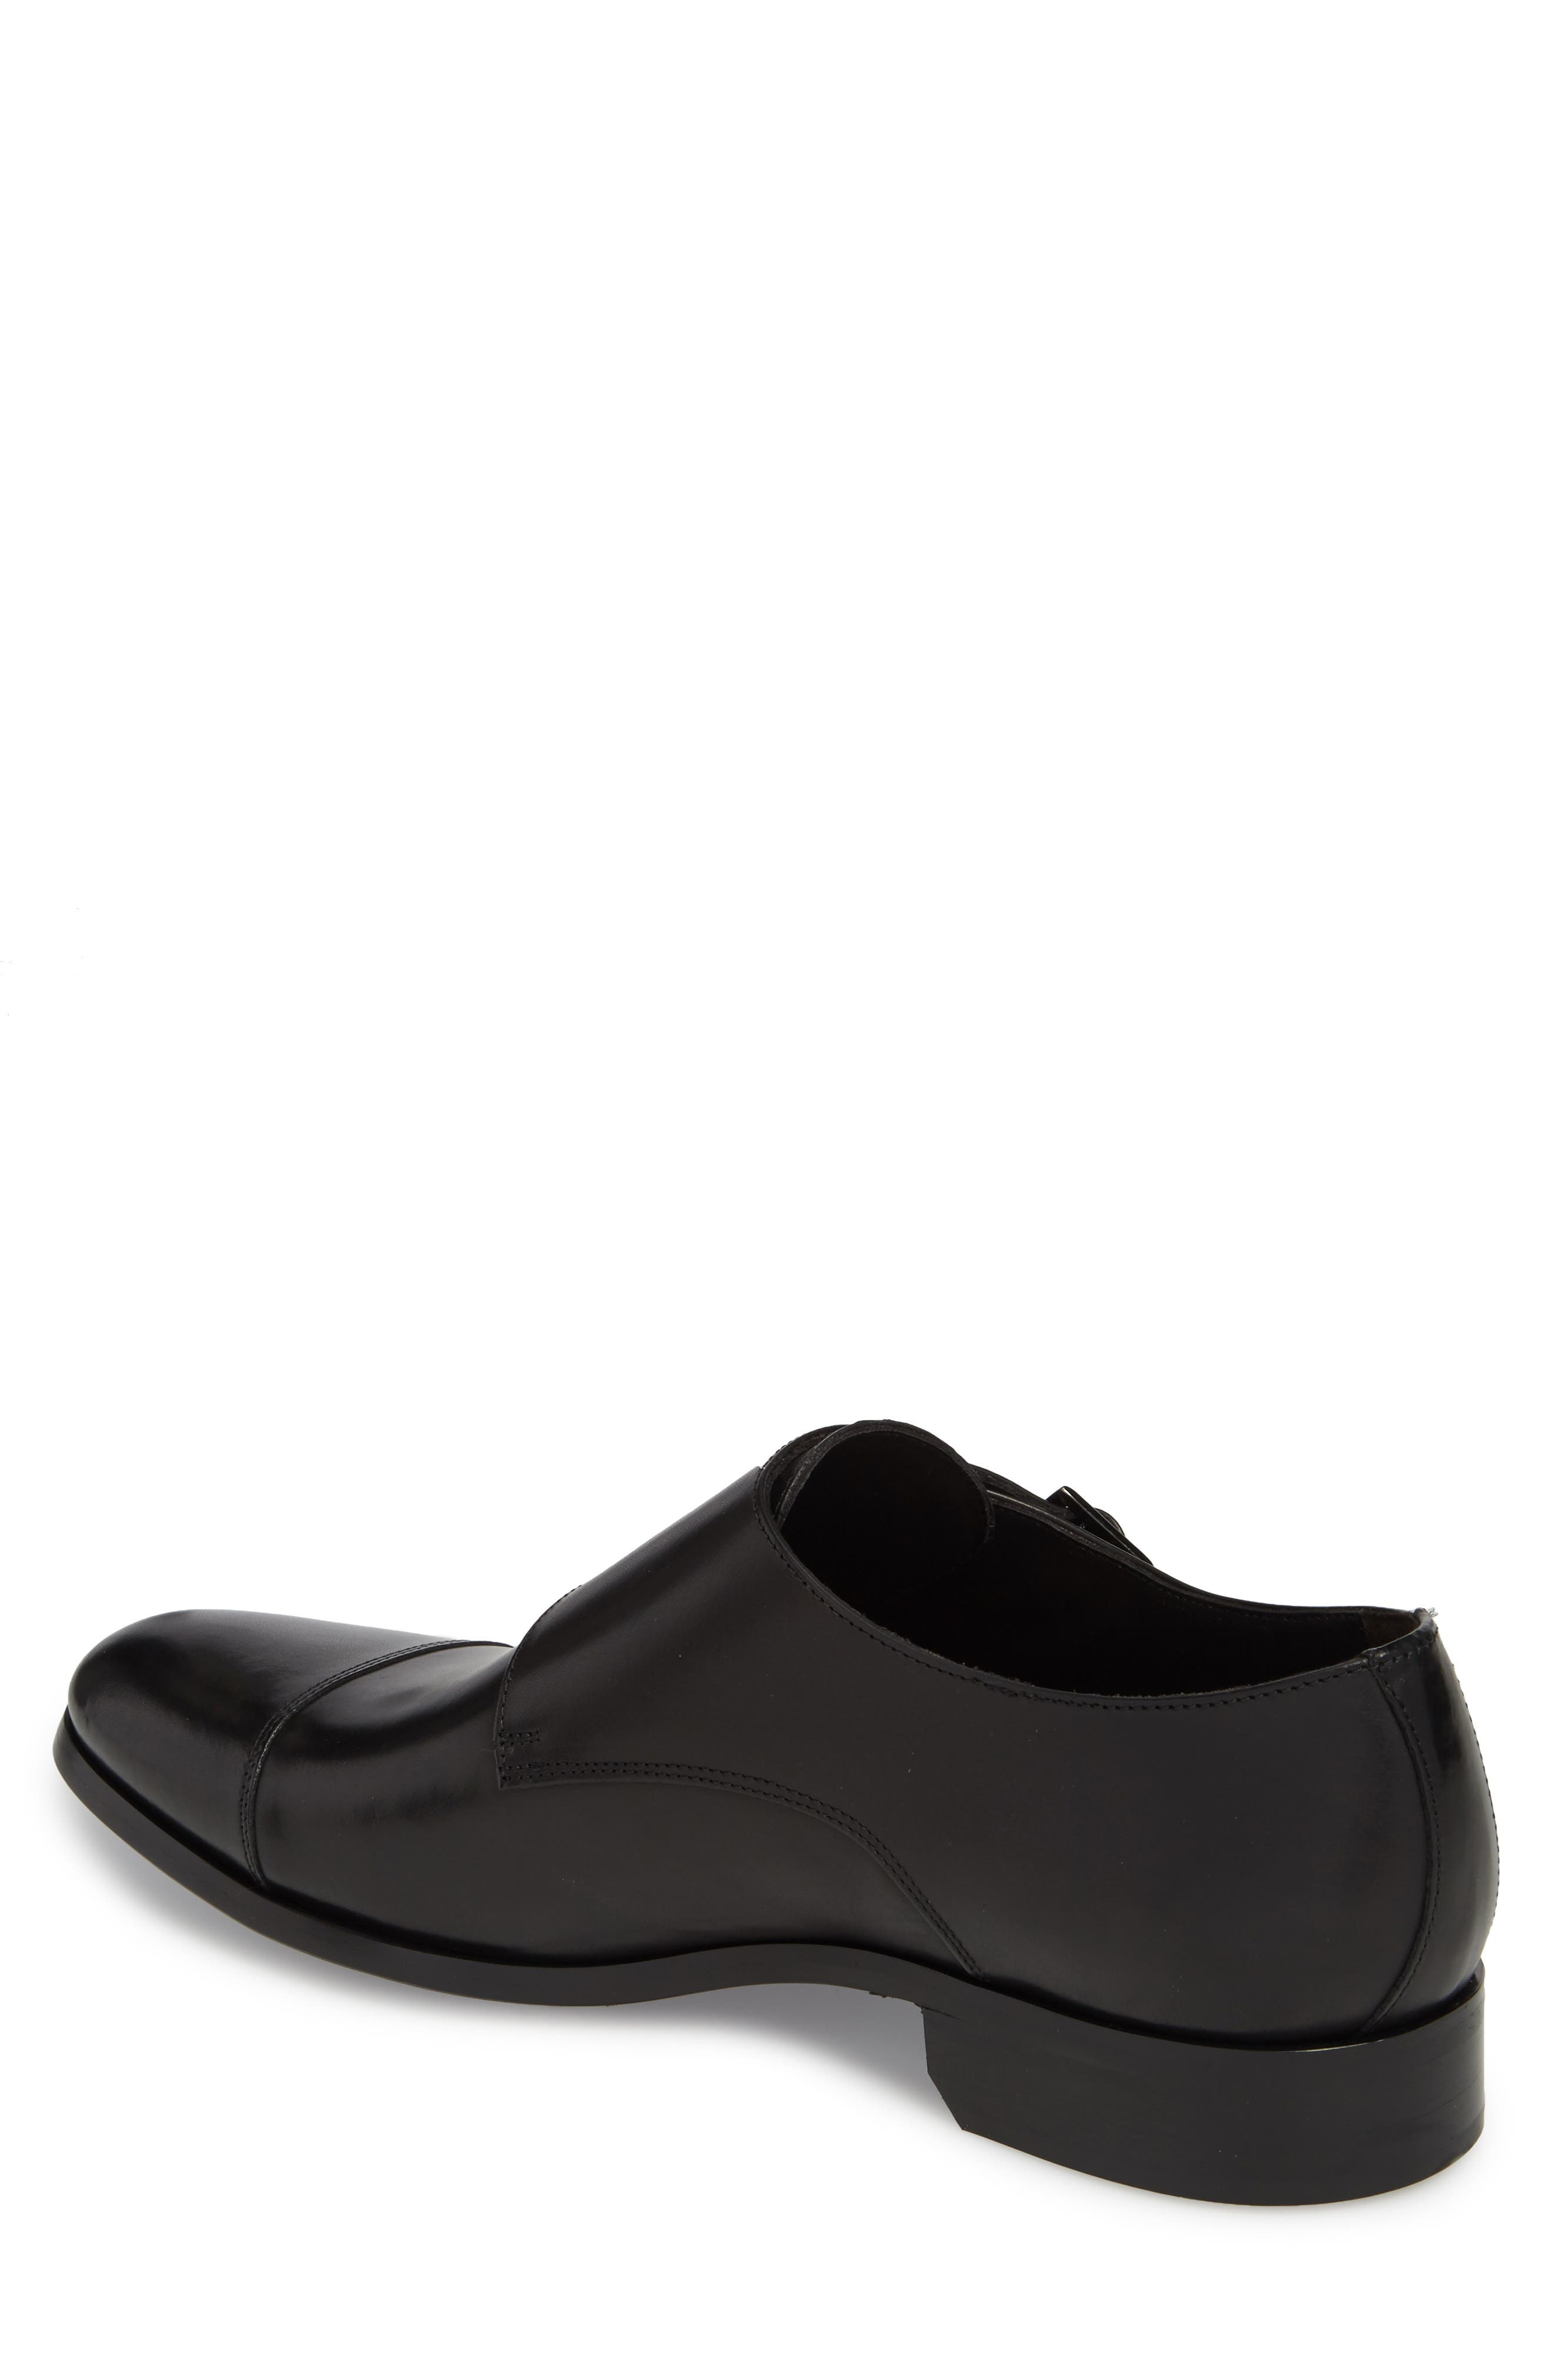 TO BOOT NEW YORK, Bankston Cap Toe Double Strap Monk Shoe, Alternate thumbnail 2, color, BLACK LEATHER